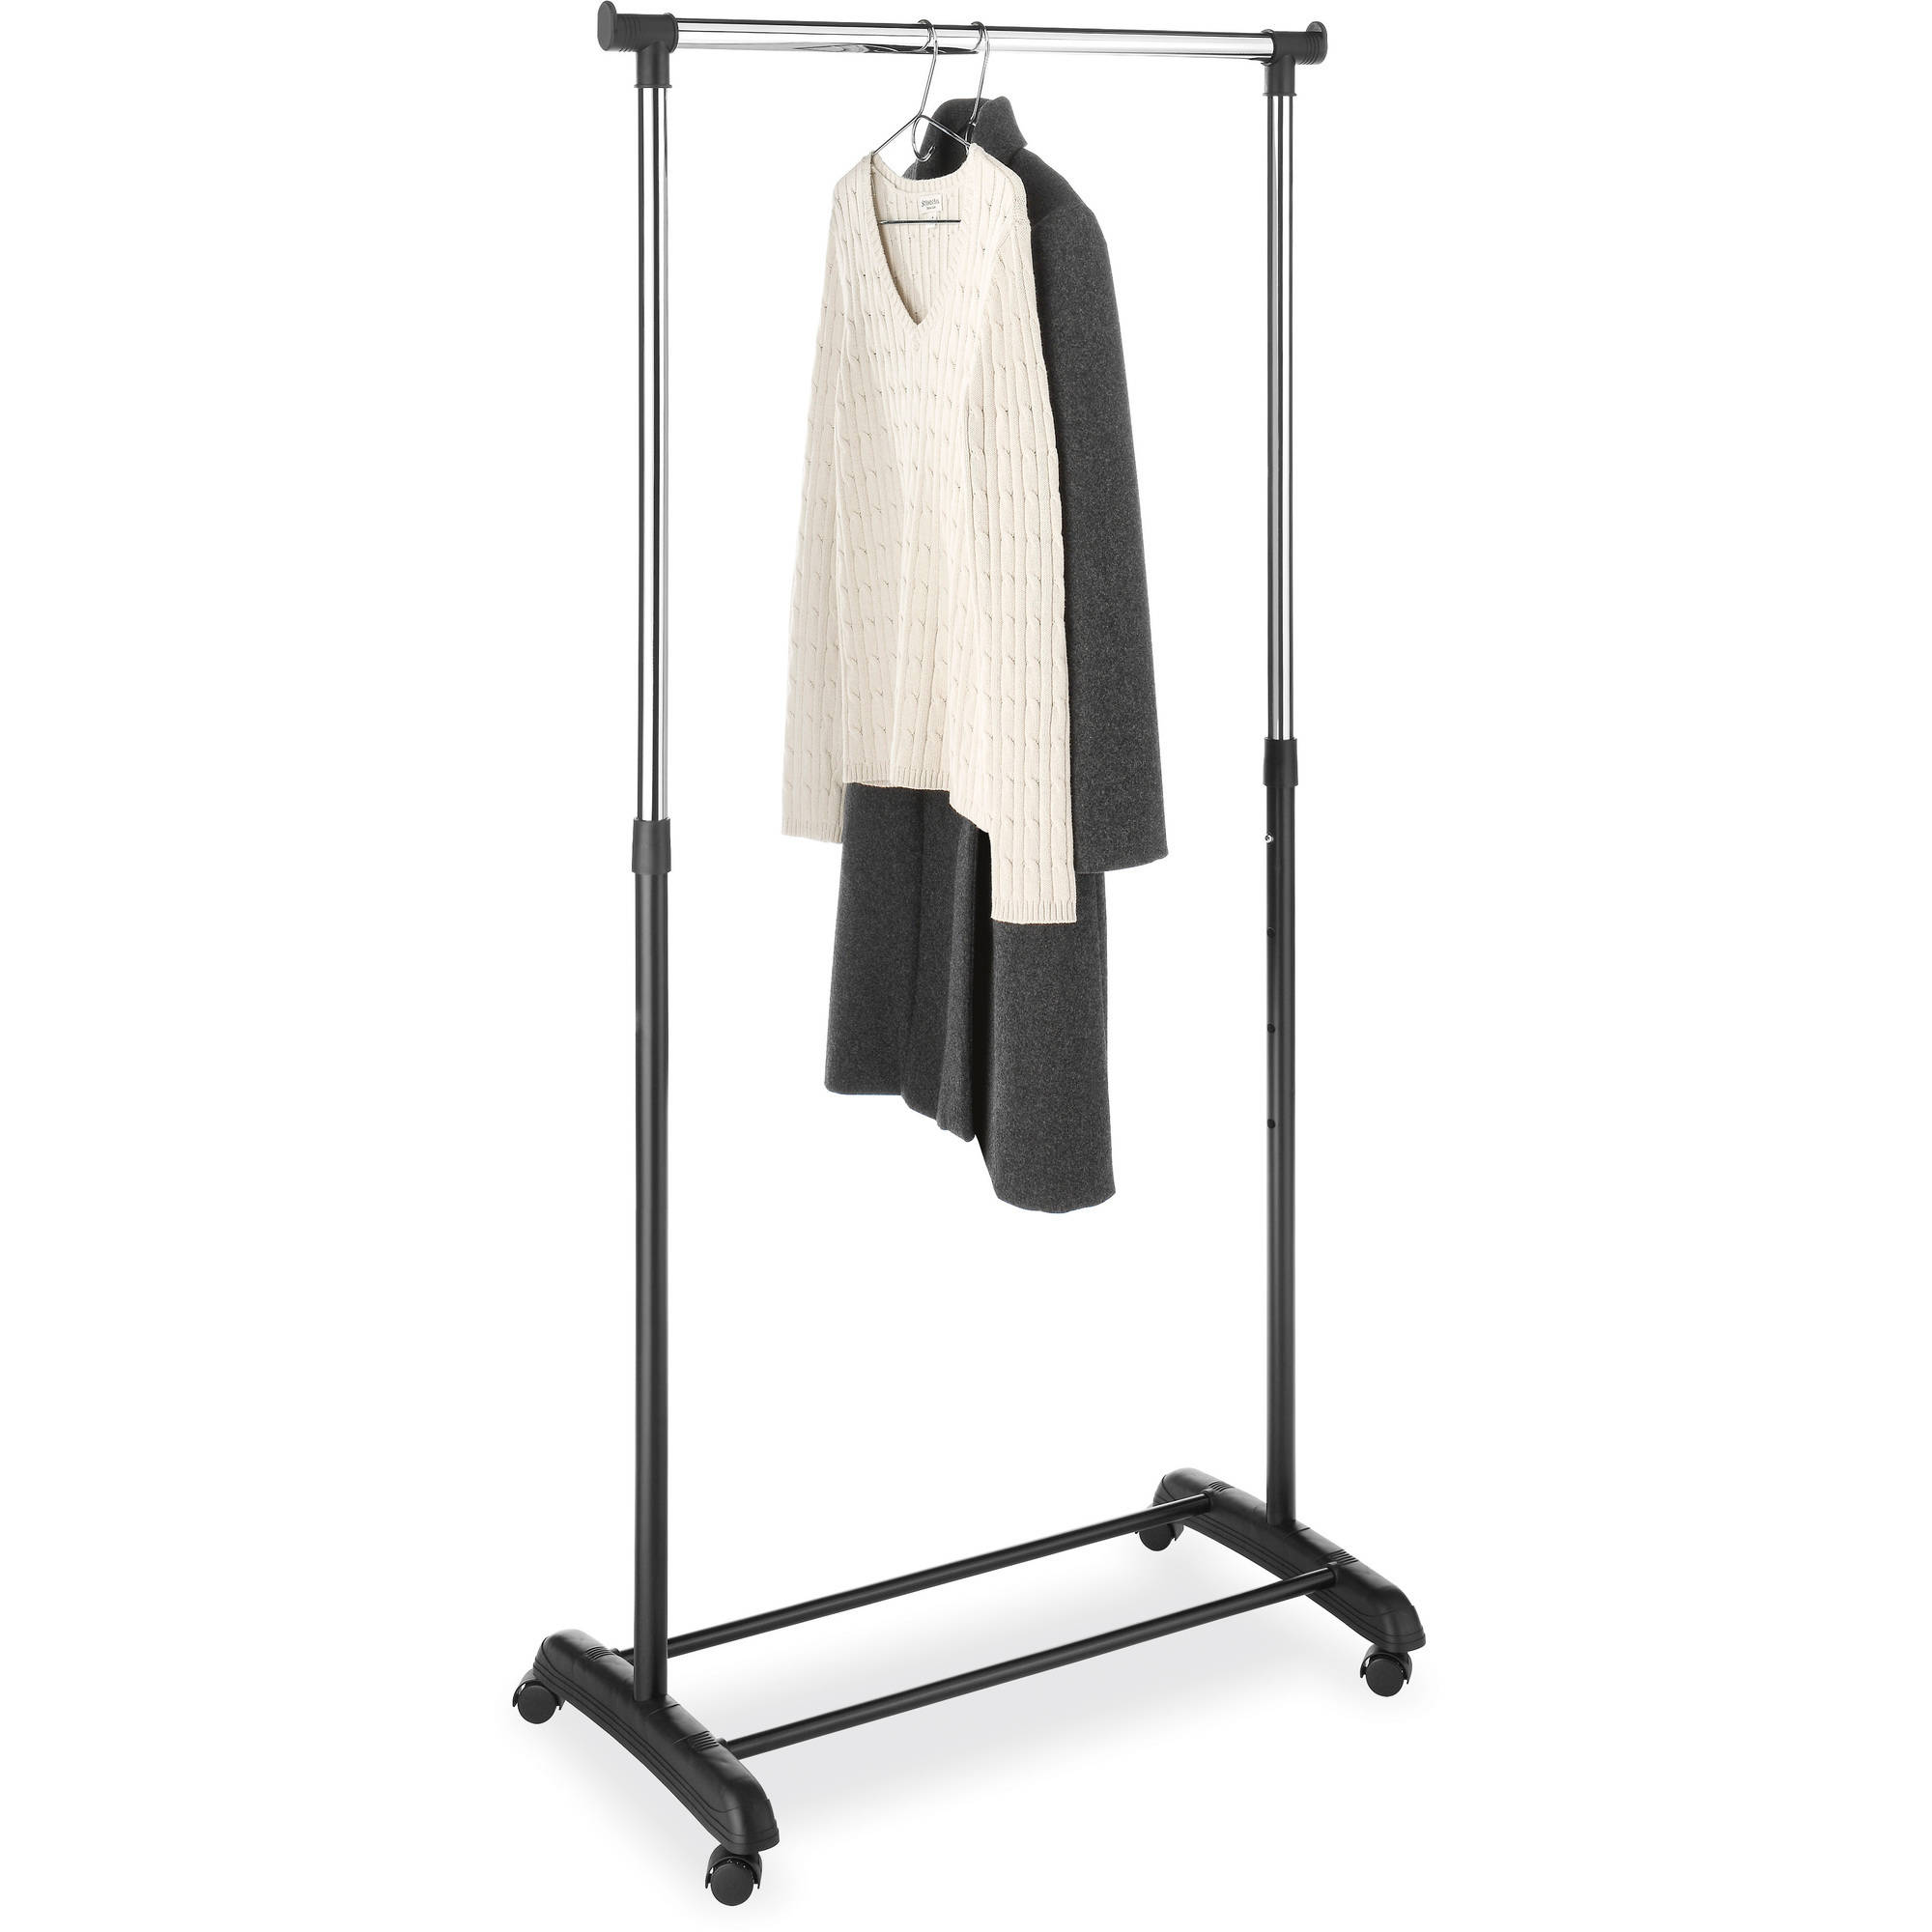 Beau Whitmor 6021 7276 Black U0026 Chrome Heavy Duty Expandable Garment Rack    Walmart.com